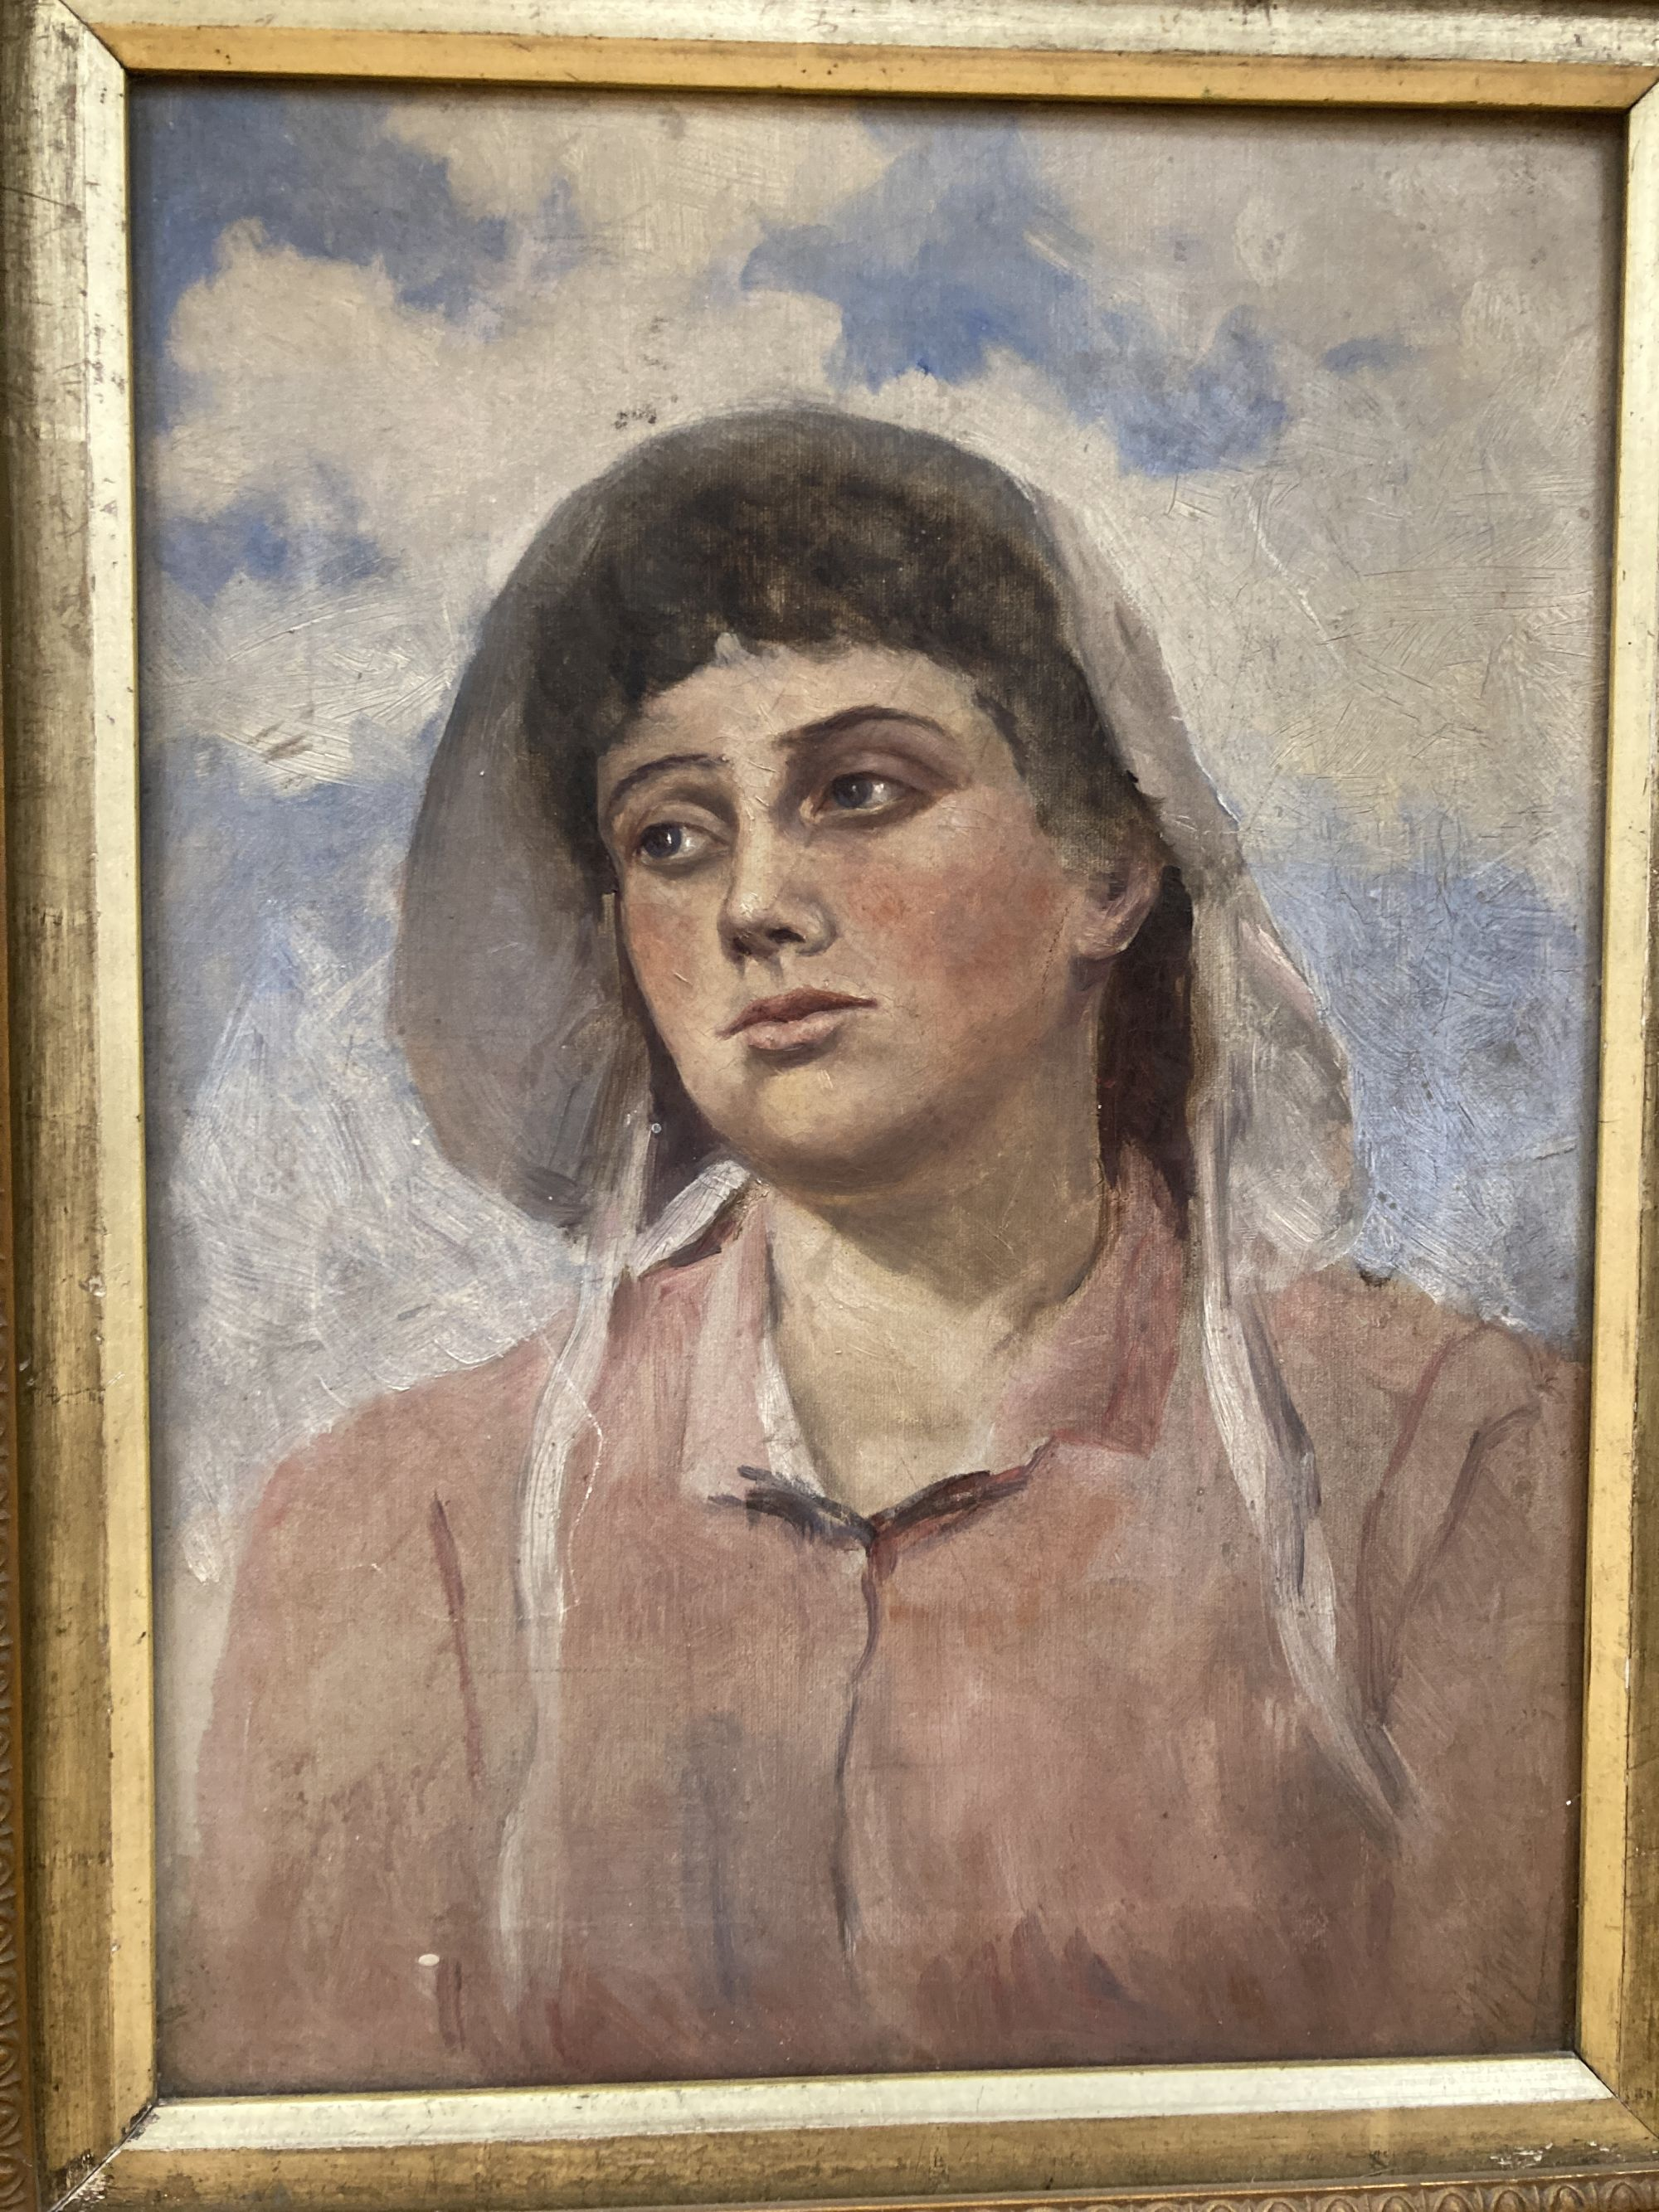 Early 20th century English School, oil on canvas, Portrait of a young woman, indistinctly signed - Image 4 of 5